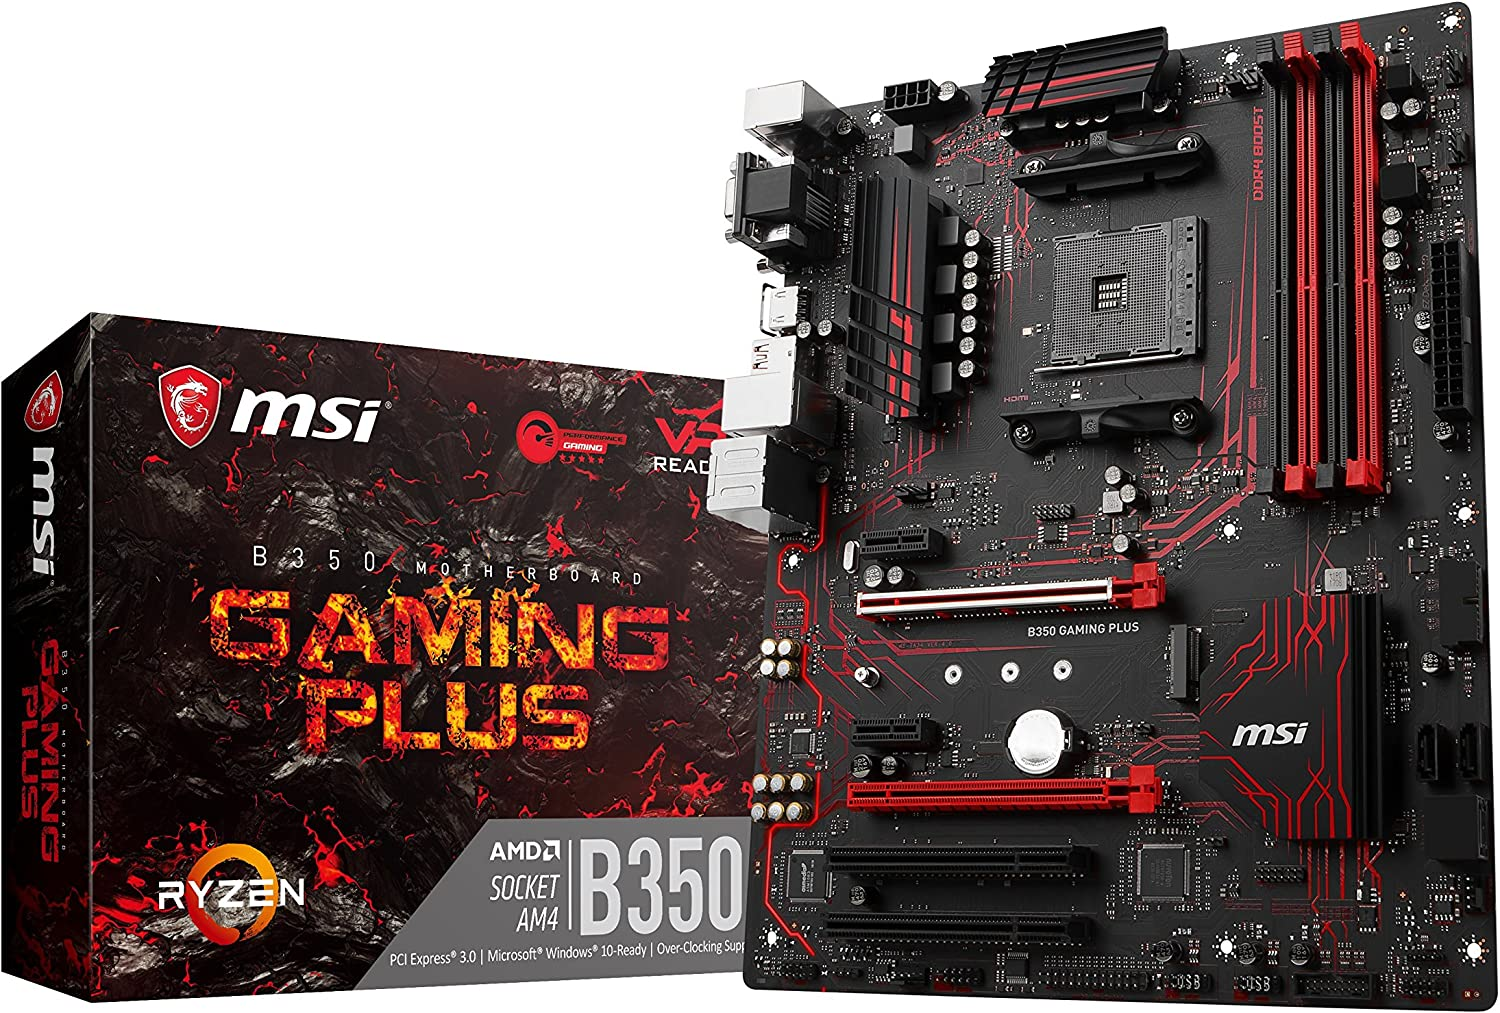 MSI B350 Gaming Plus - Placa Base Performance (AMD AM4 Chipset B350, DDR4 Boost, Gaming LAN, Audio Boost, VR Ready, Gaming Leds, Military Class V)